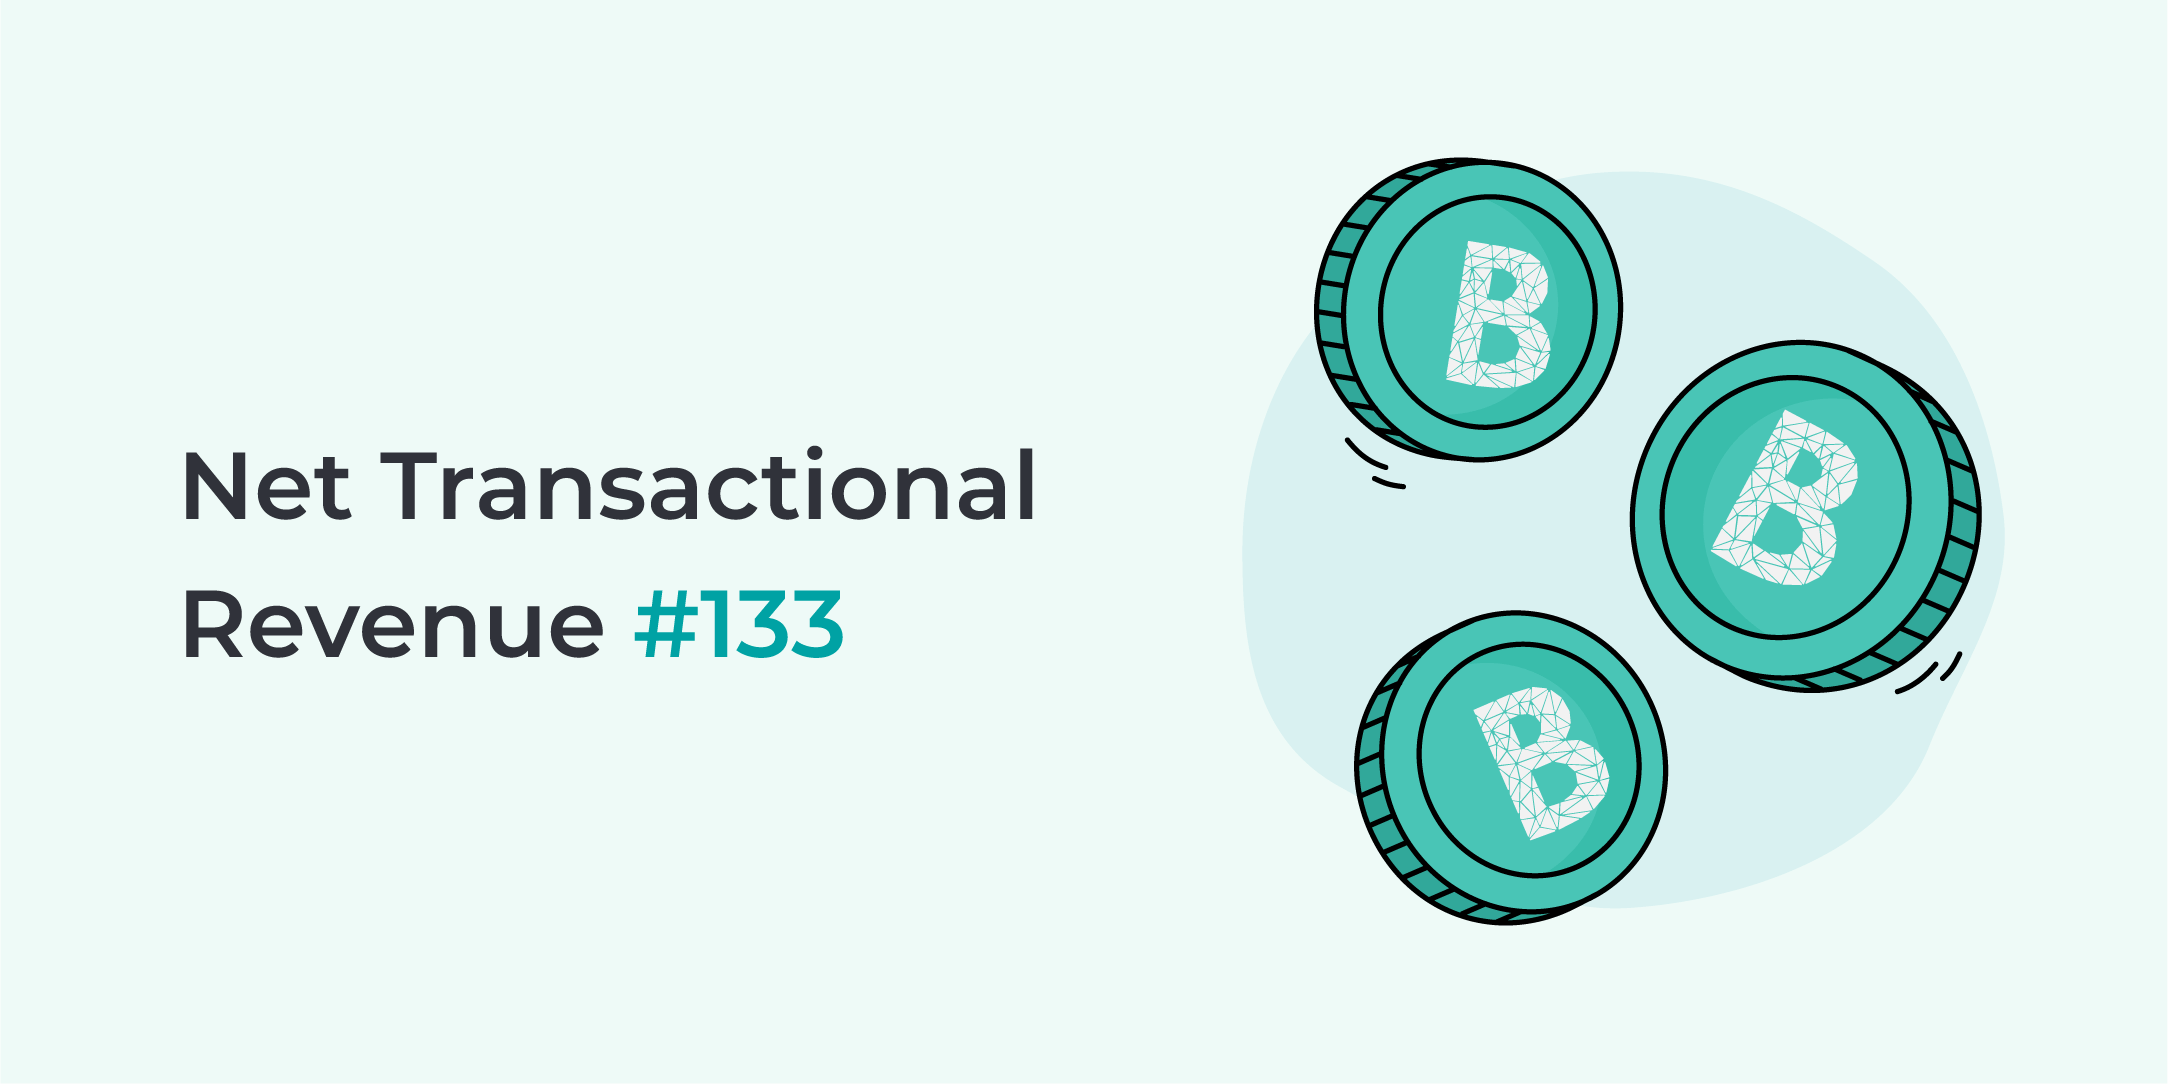 Bankera paid the 133th net transactional revenue